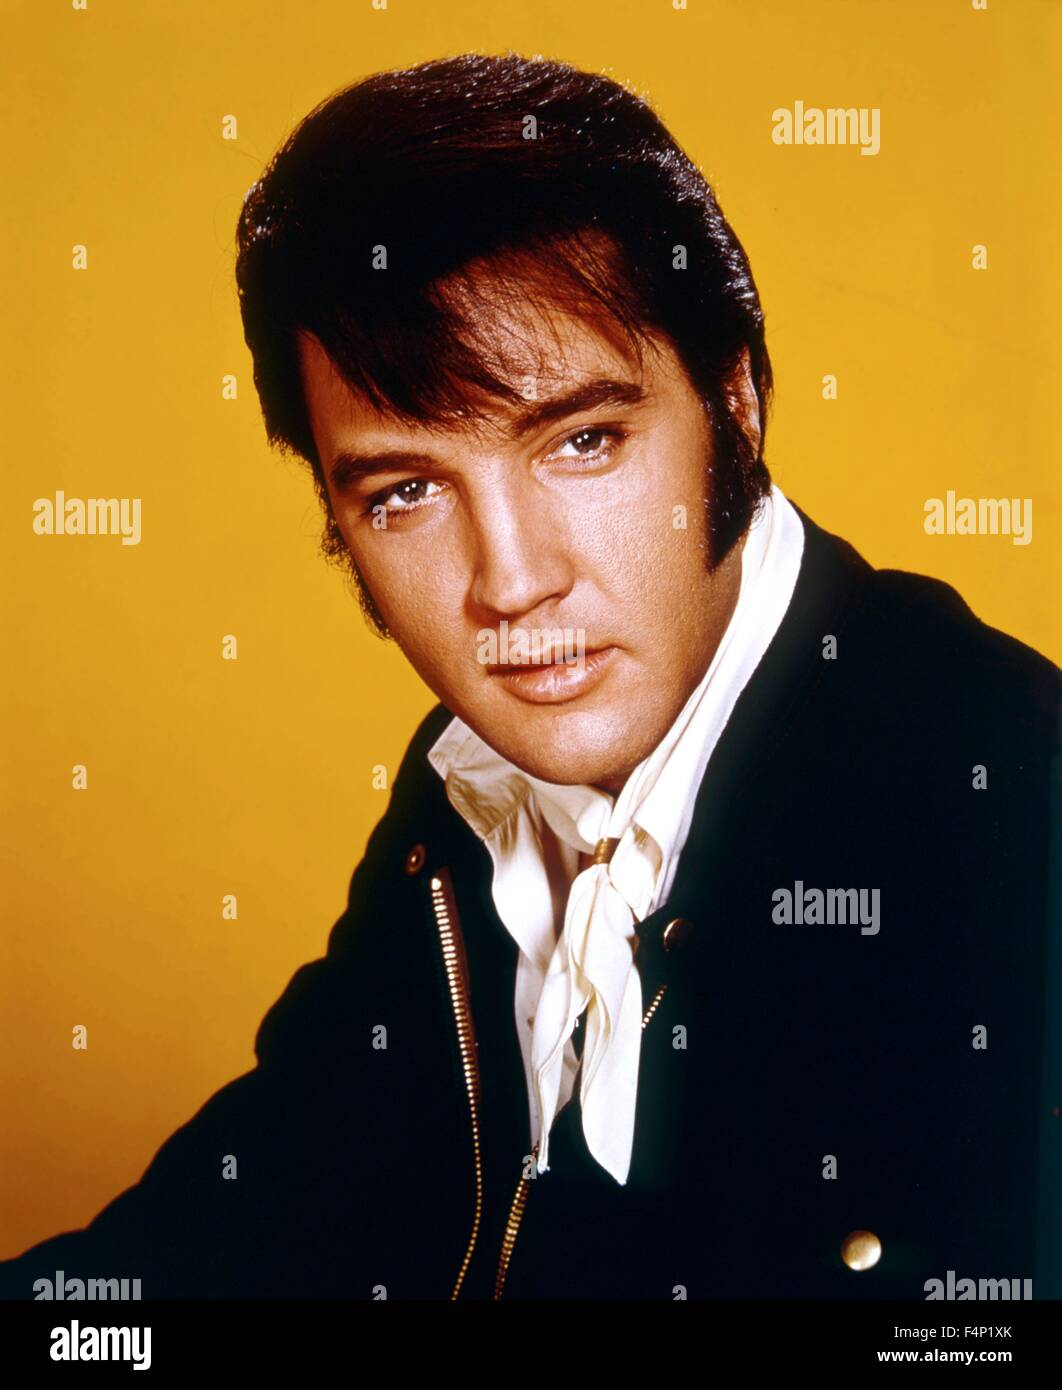 Elvis Presley in 1969 - Stock Image